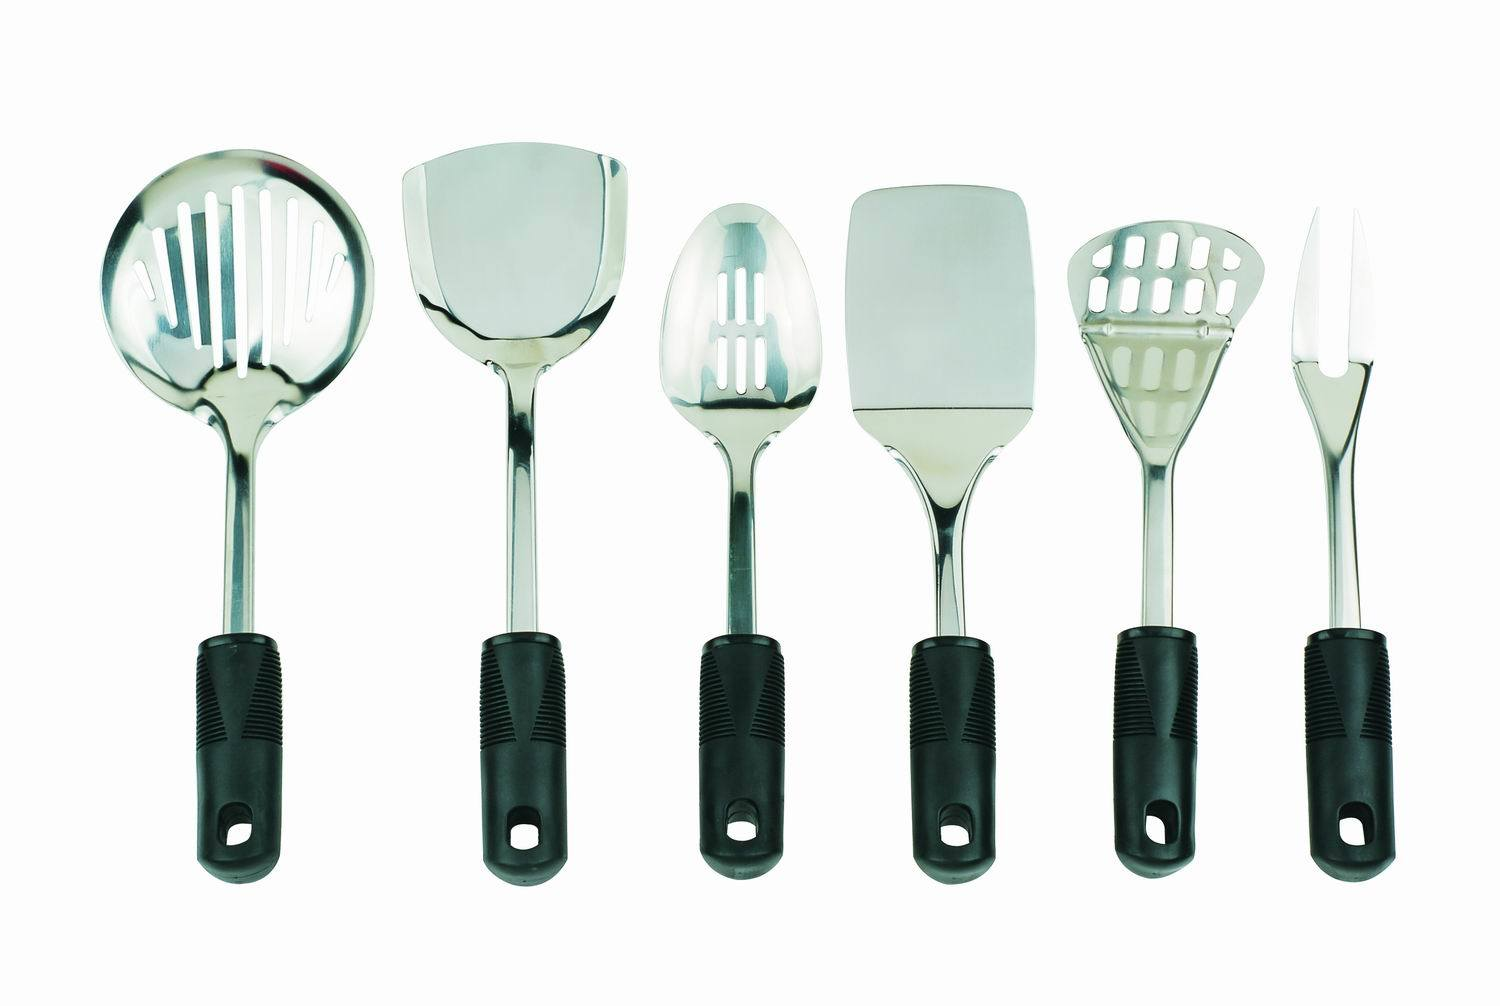 Kitchen design gallery kitchen utensils and equipment for Kitchen design utensils